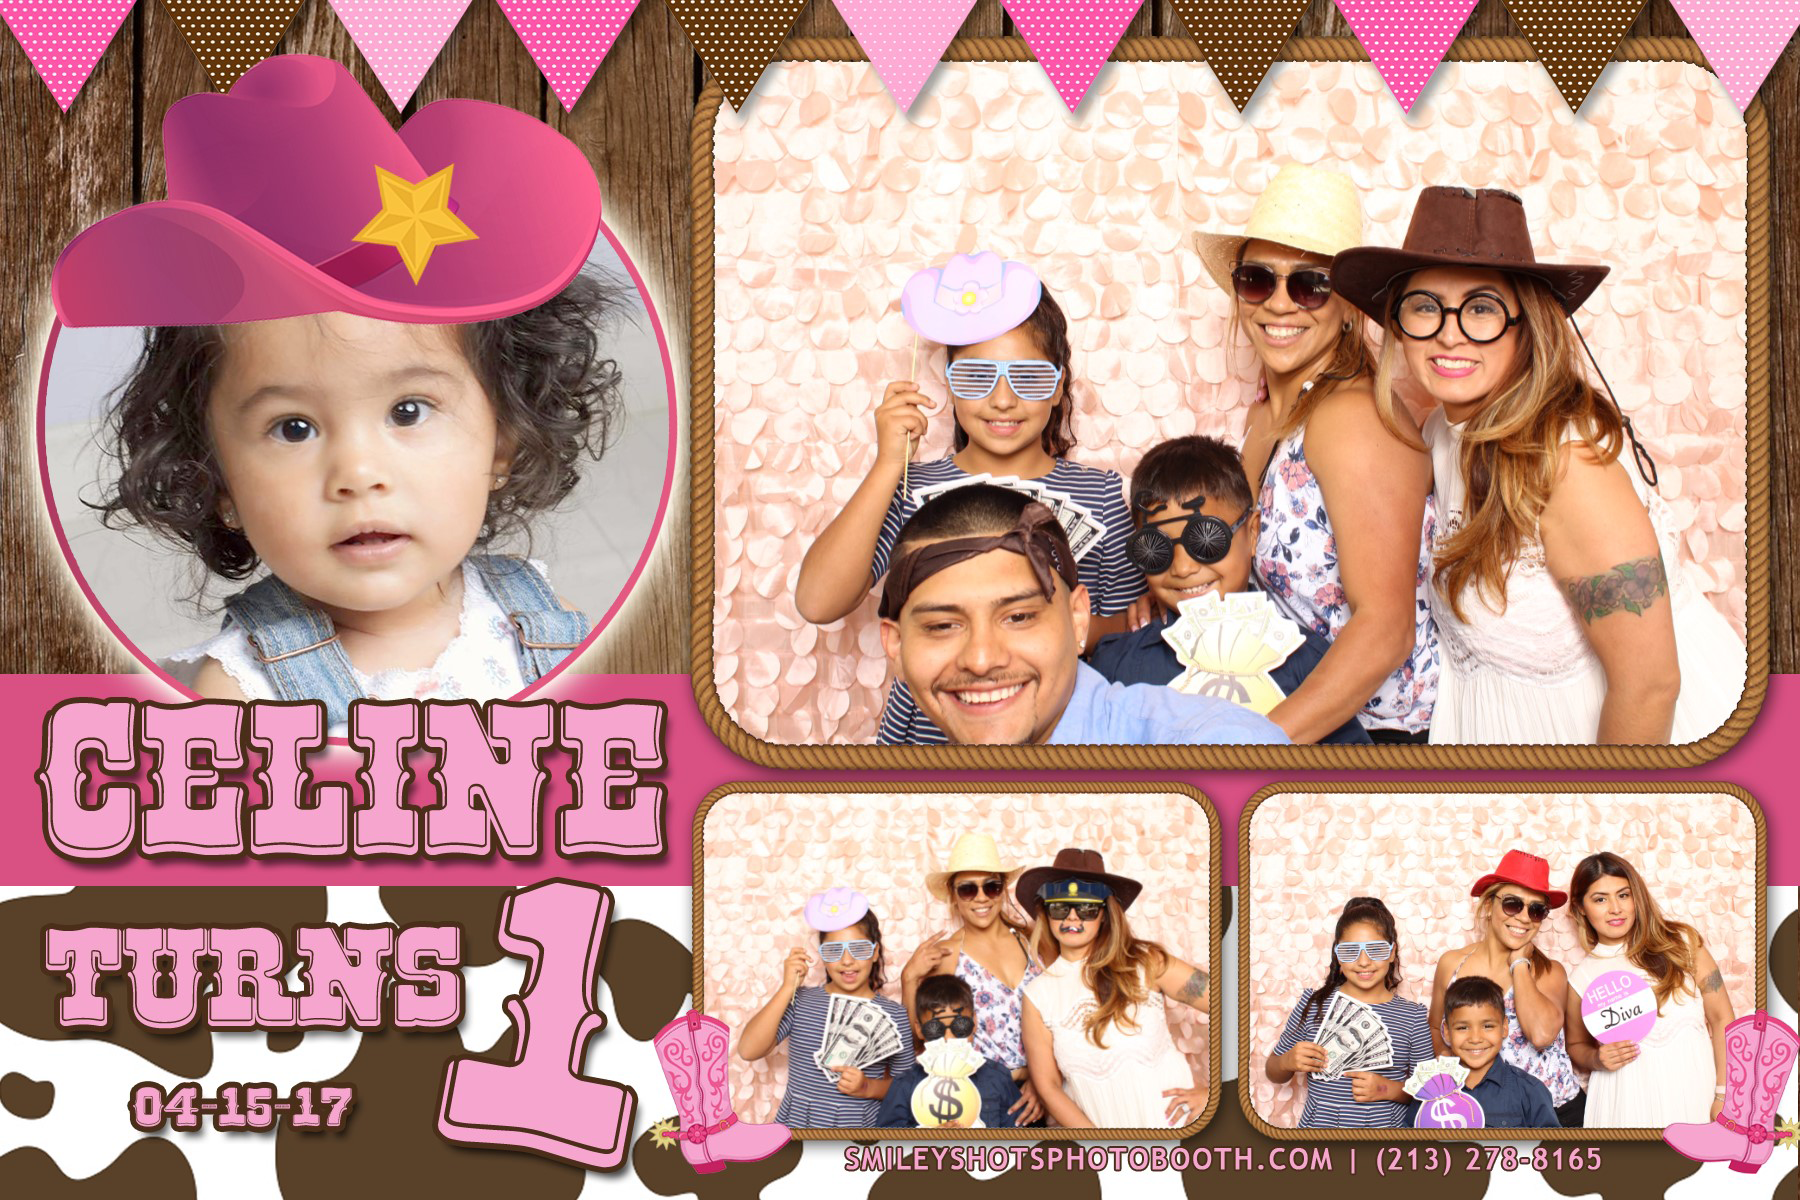 Celine turns 1 Smiley Shots Photo Booth Photobooth (36).png